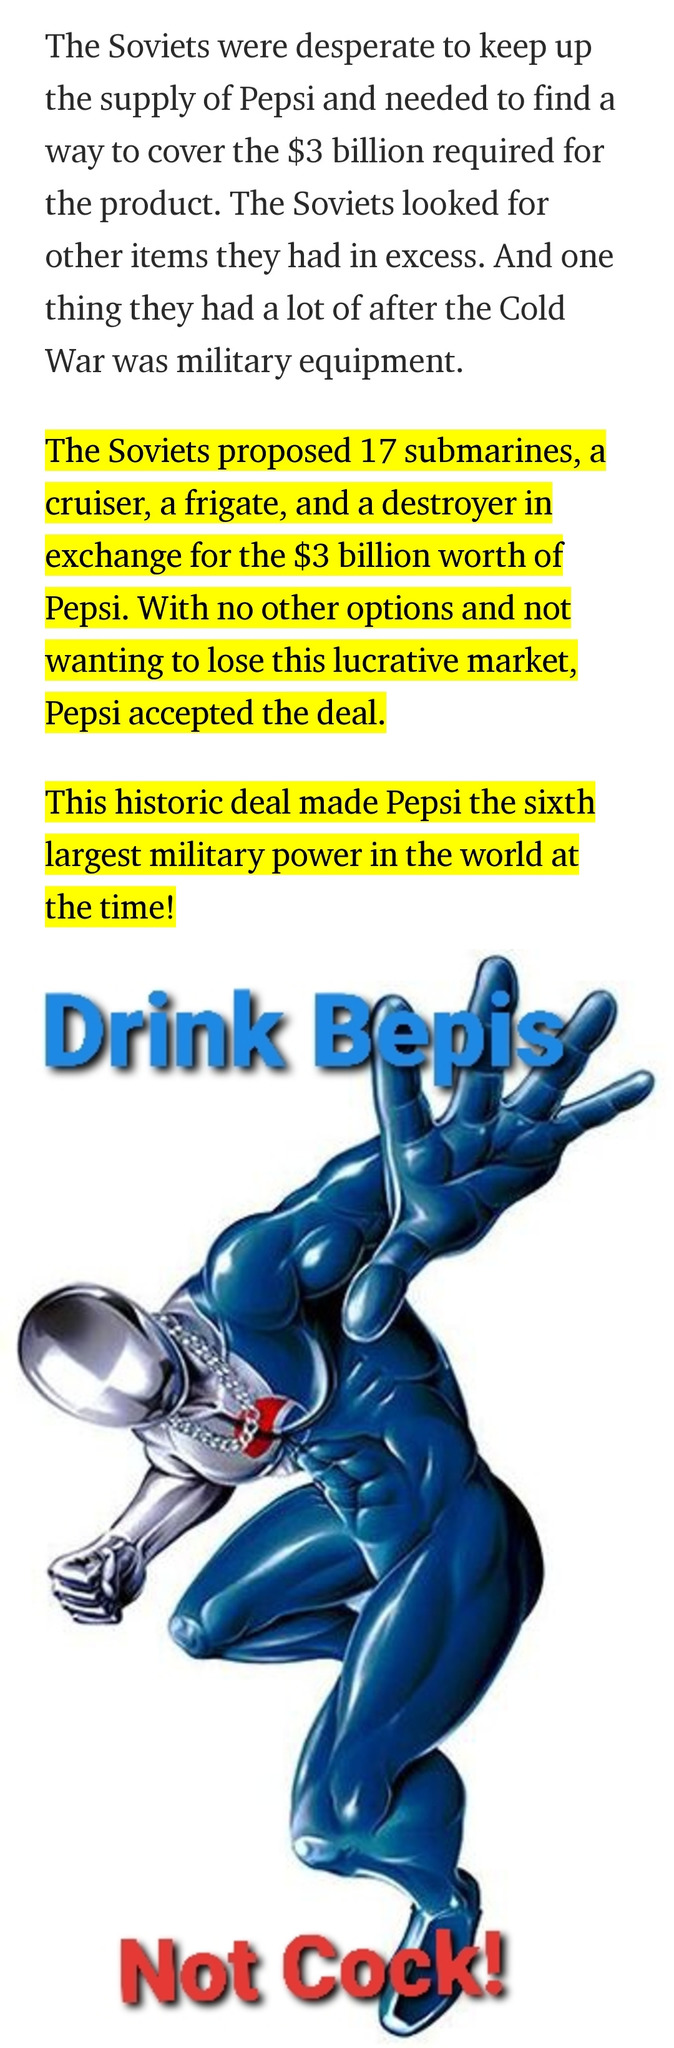 Drink Bepis not Cock - meme